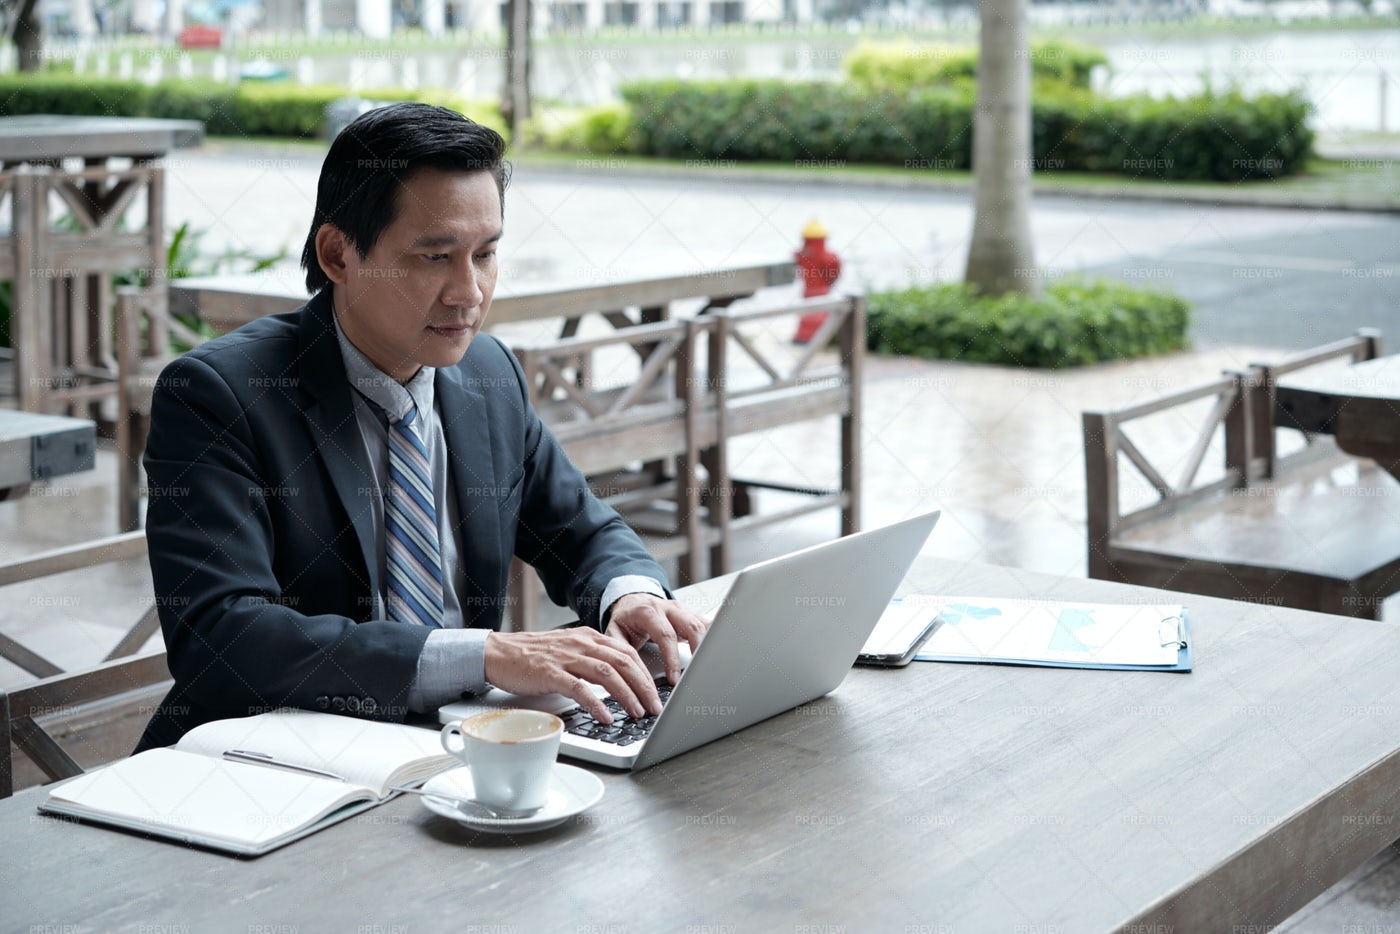 Businessman Working In Outdoor Cafe: Stock Photos